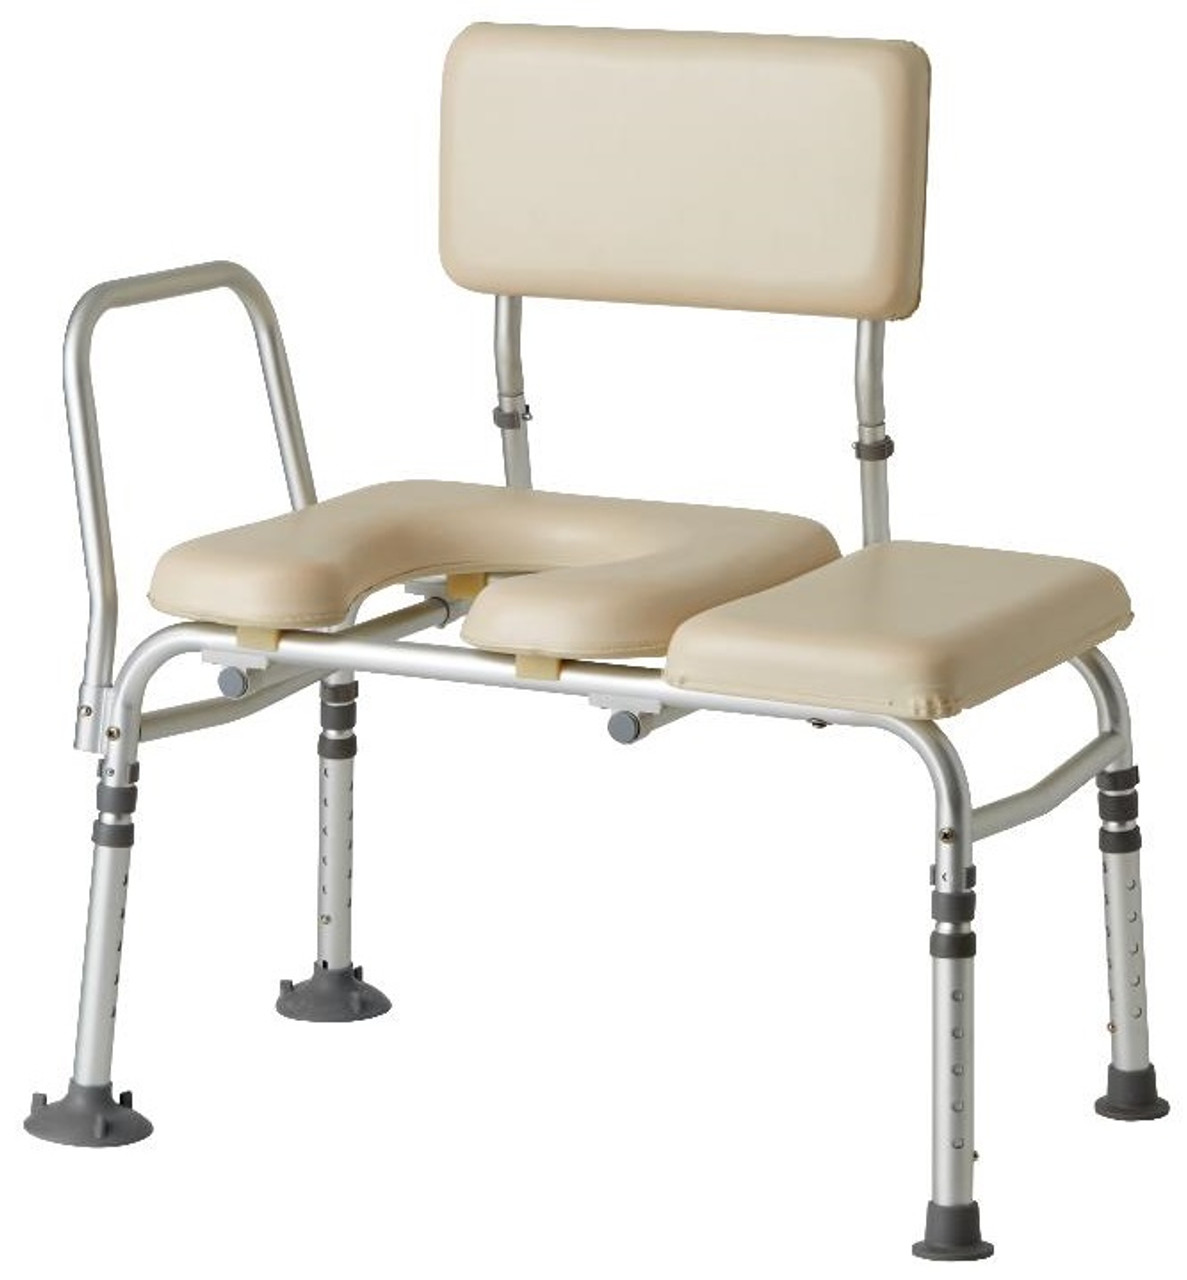 Pleasing Guardian Padded Transfer Bench With Cut Out 98013Kd Ibusinesslaw Wood Chair Design Ideas Ibusinesslaworg